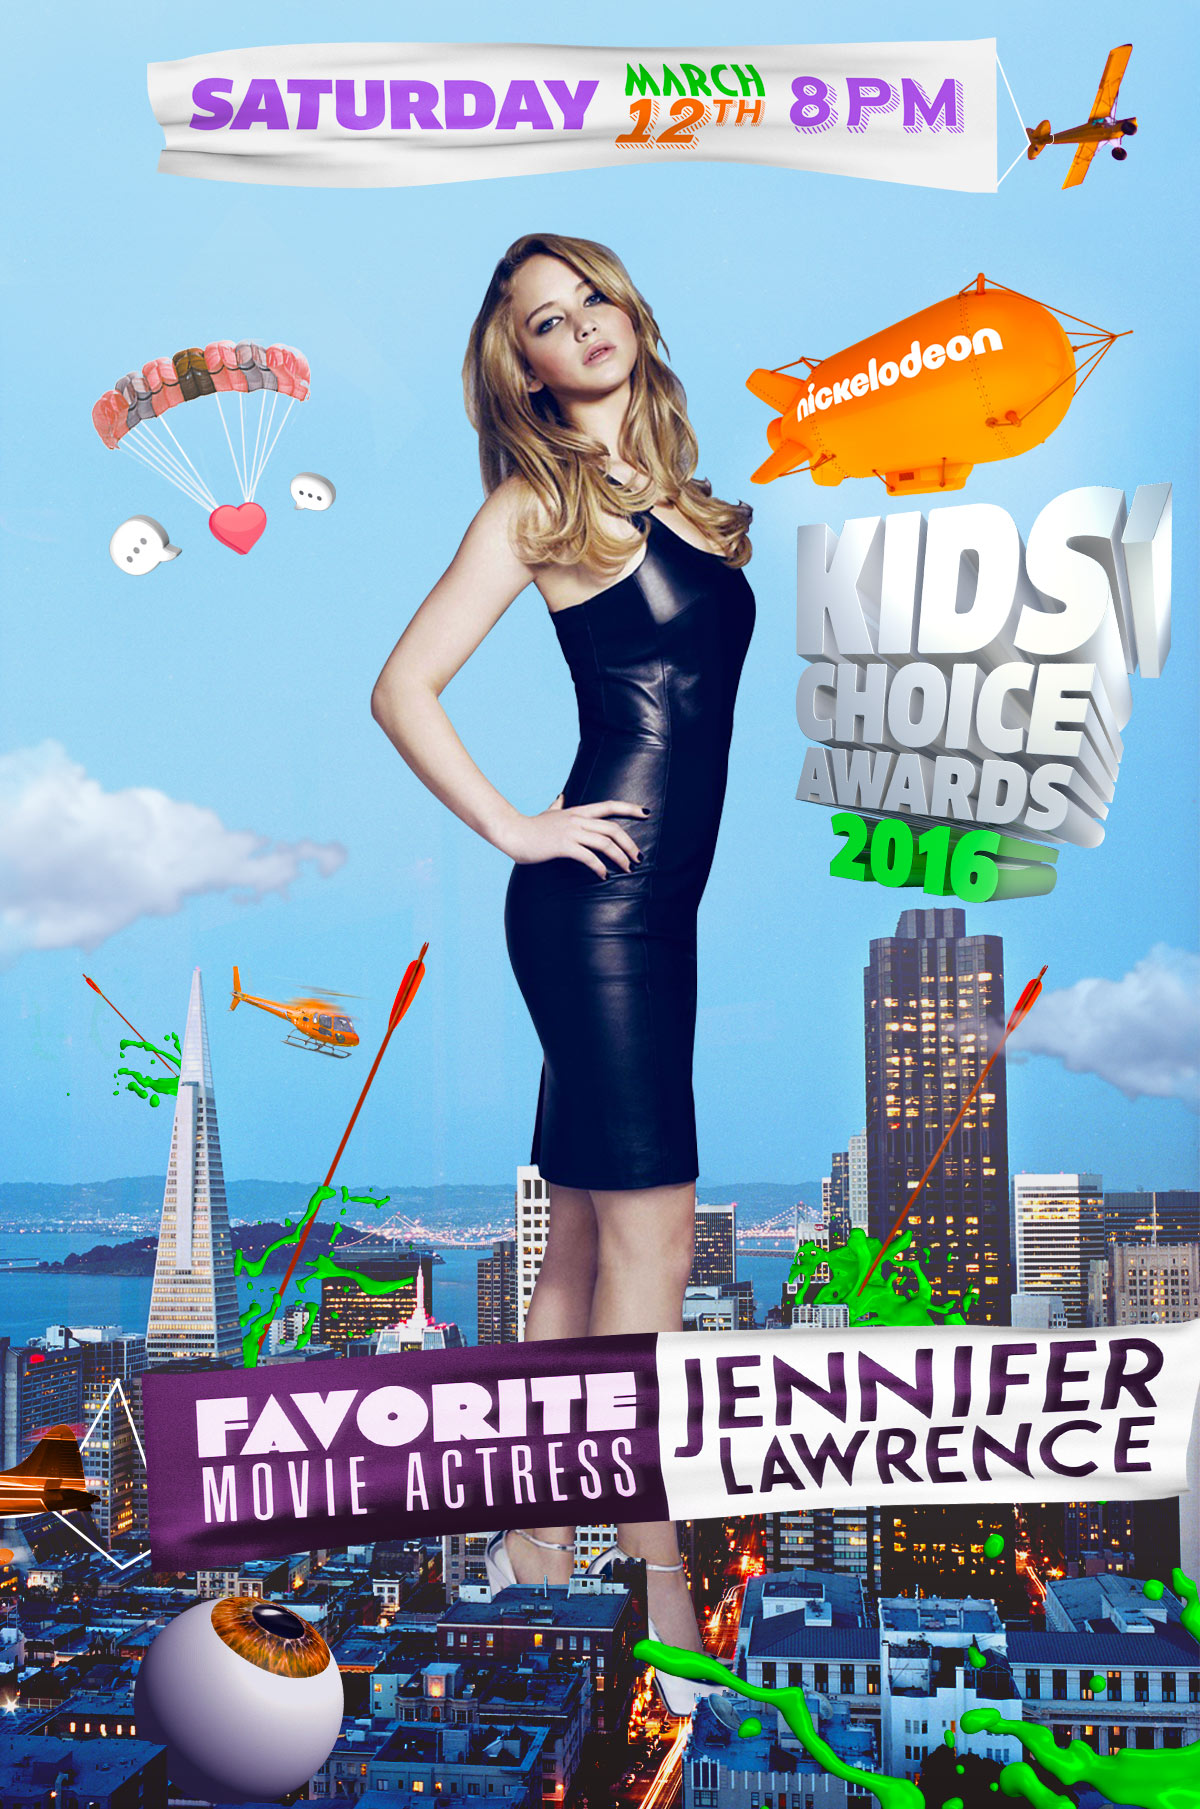 Design style frame 02 for Nickelodeon Kids Choice Awards promo